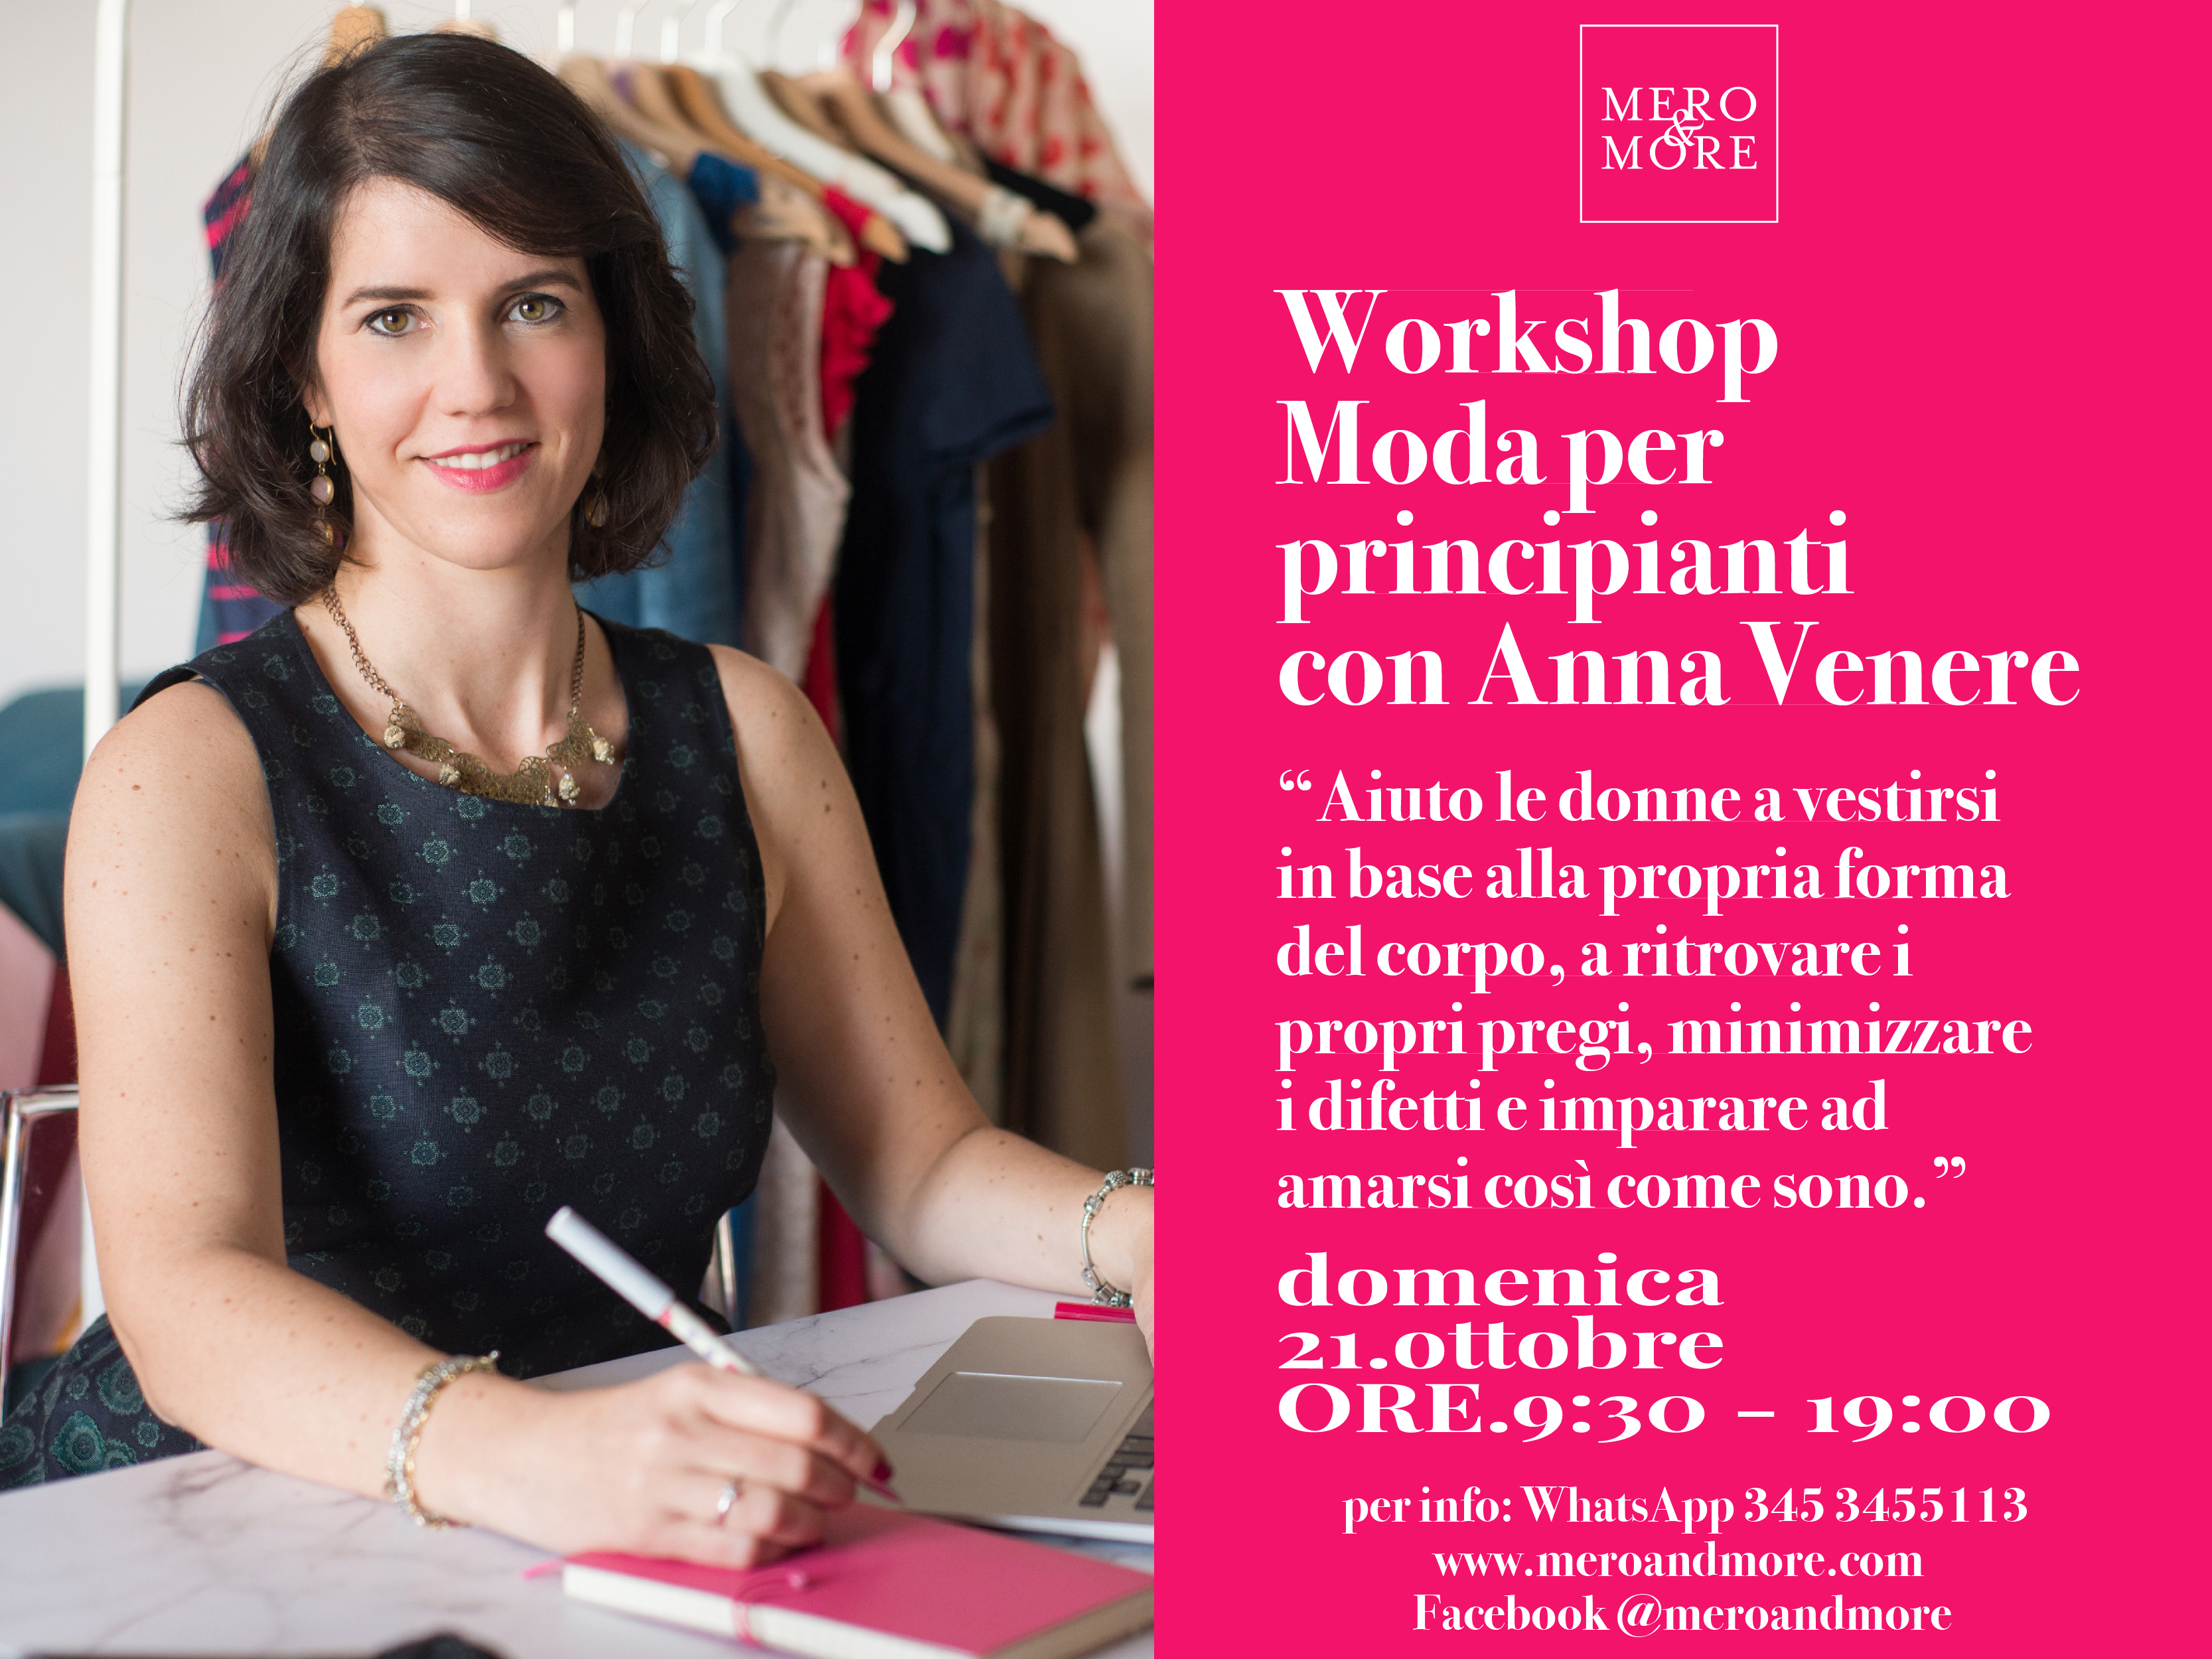 Workshop moda per principianti